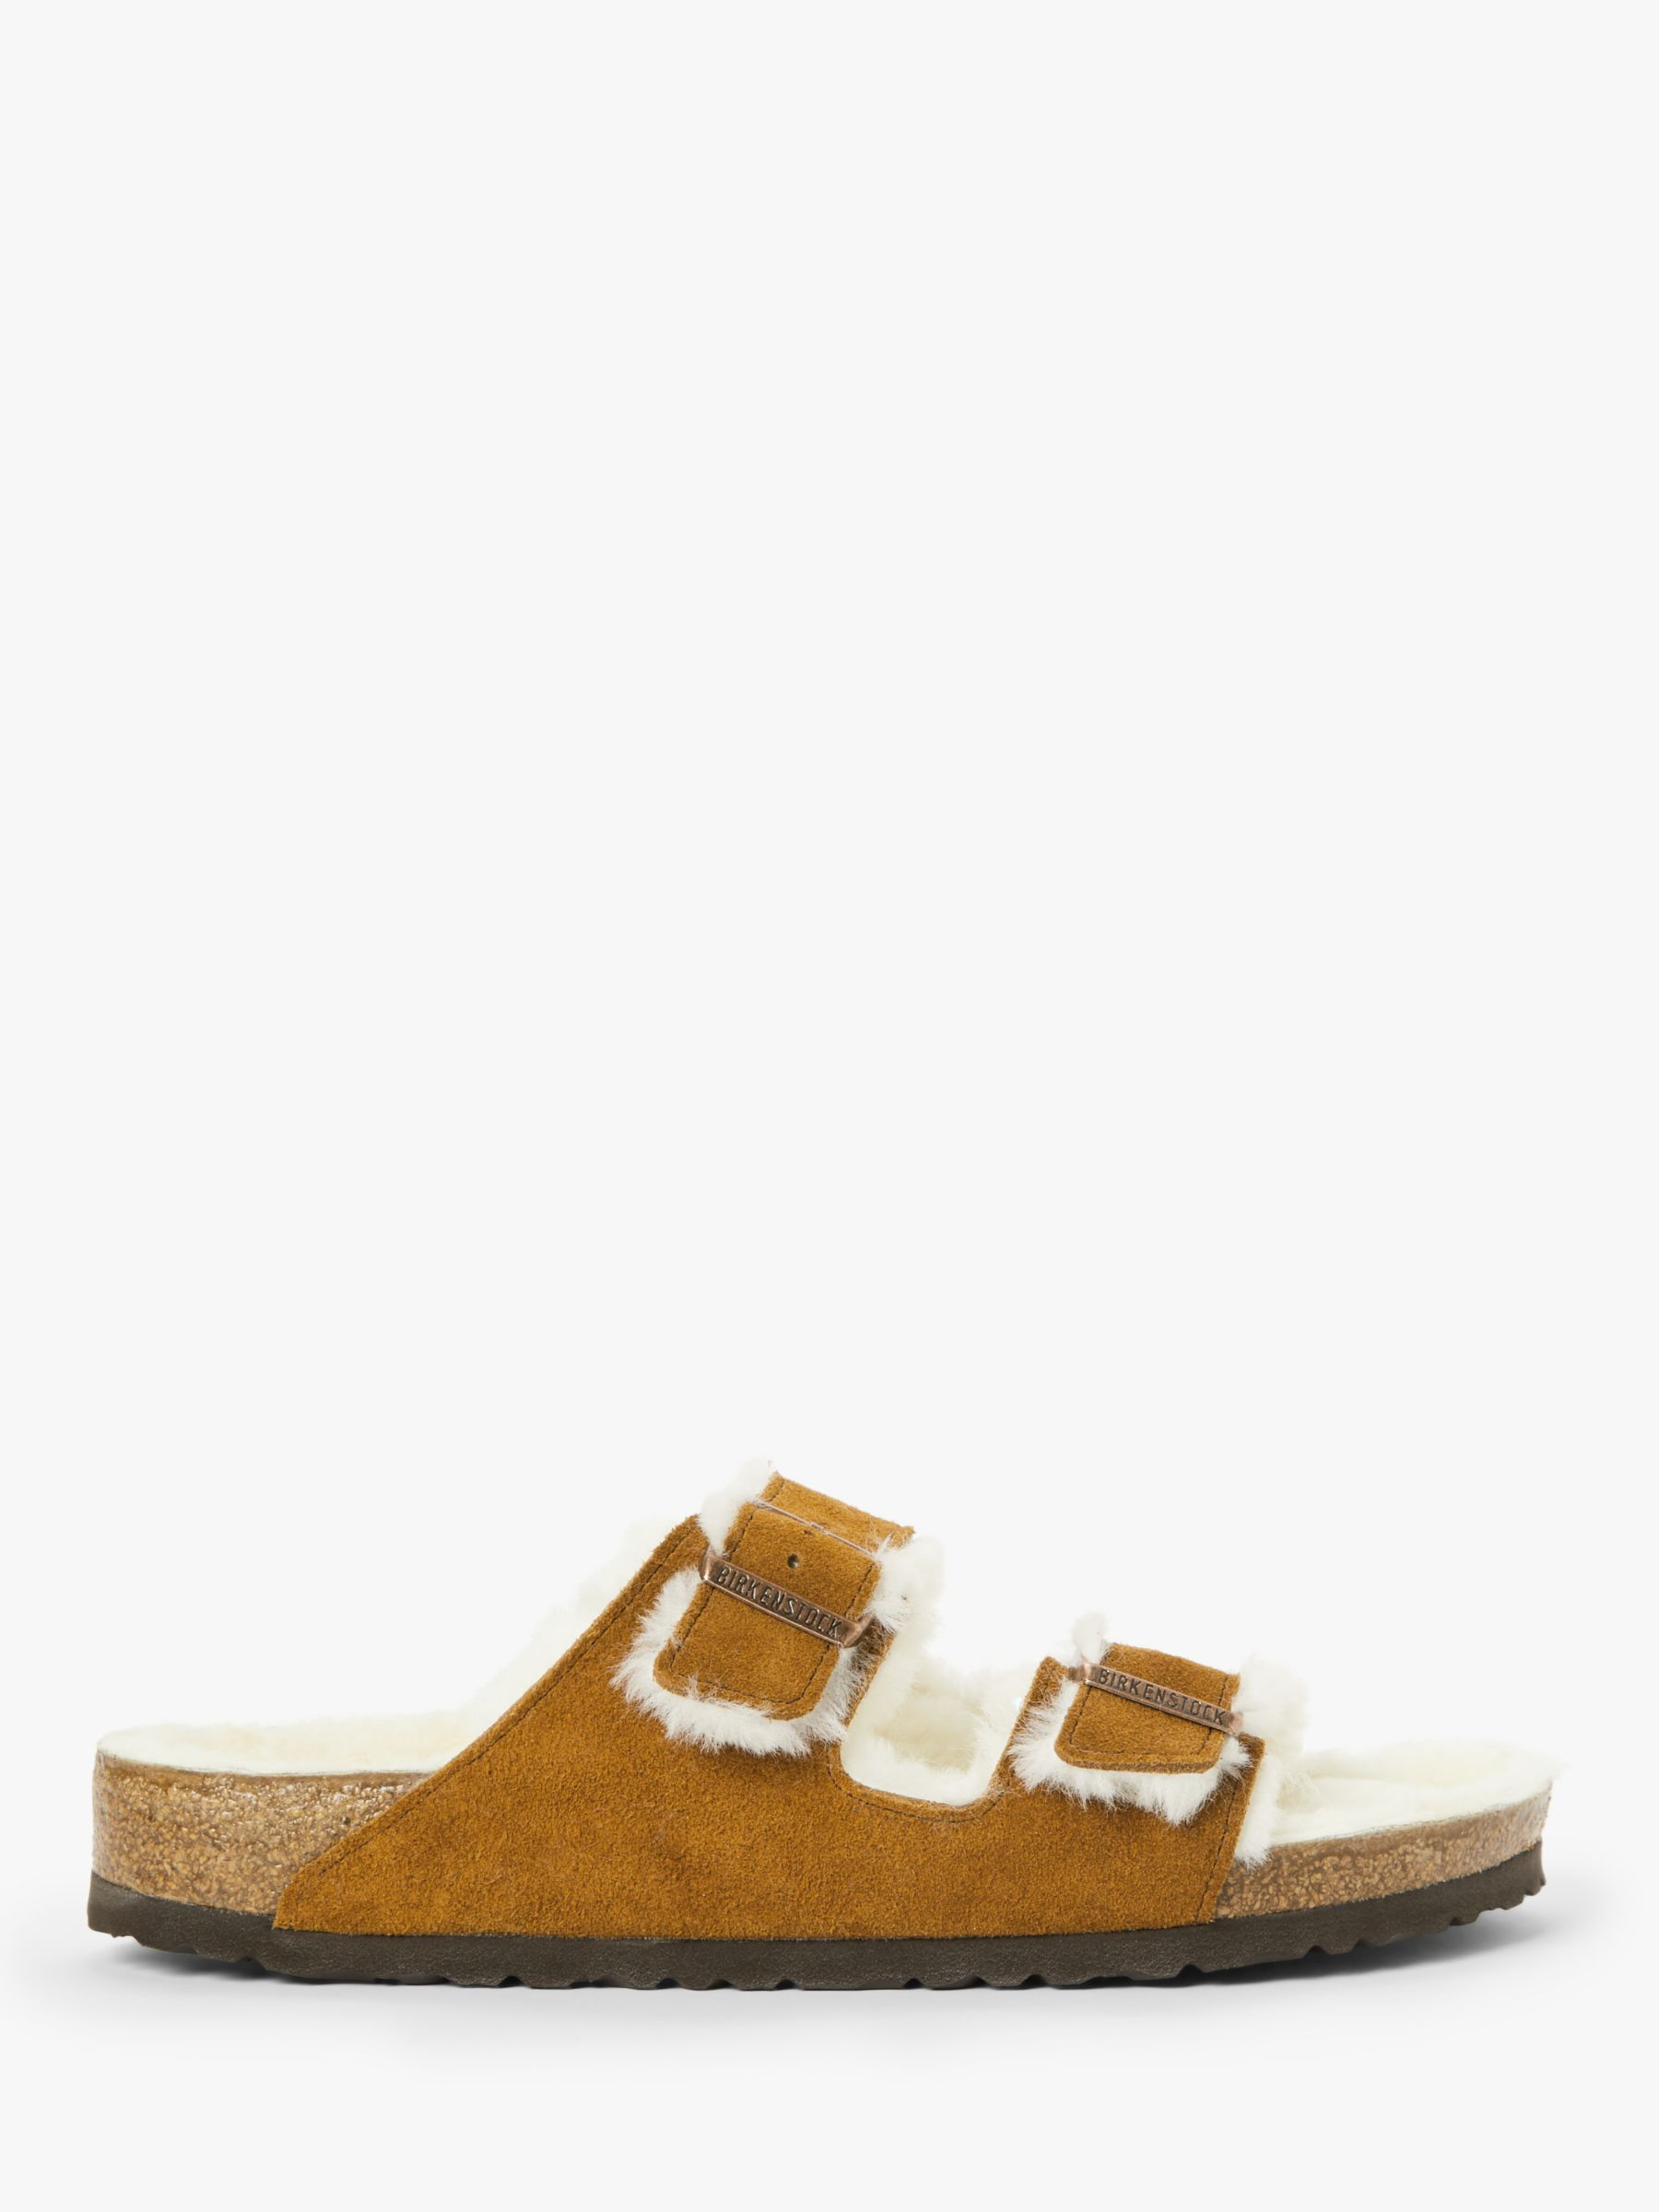 Buy Birkenstock Arizona Suede Sheepkin Sandals, Mink, 5.5 Online at johnlewis.com